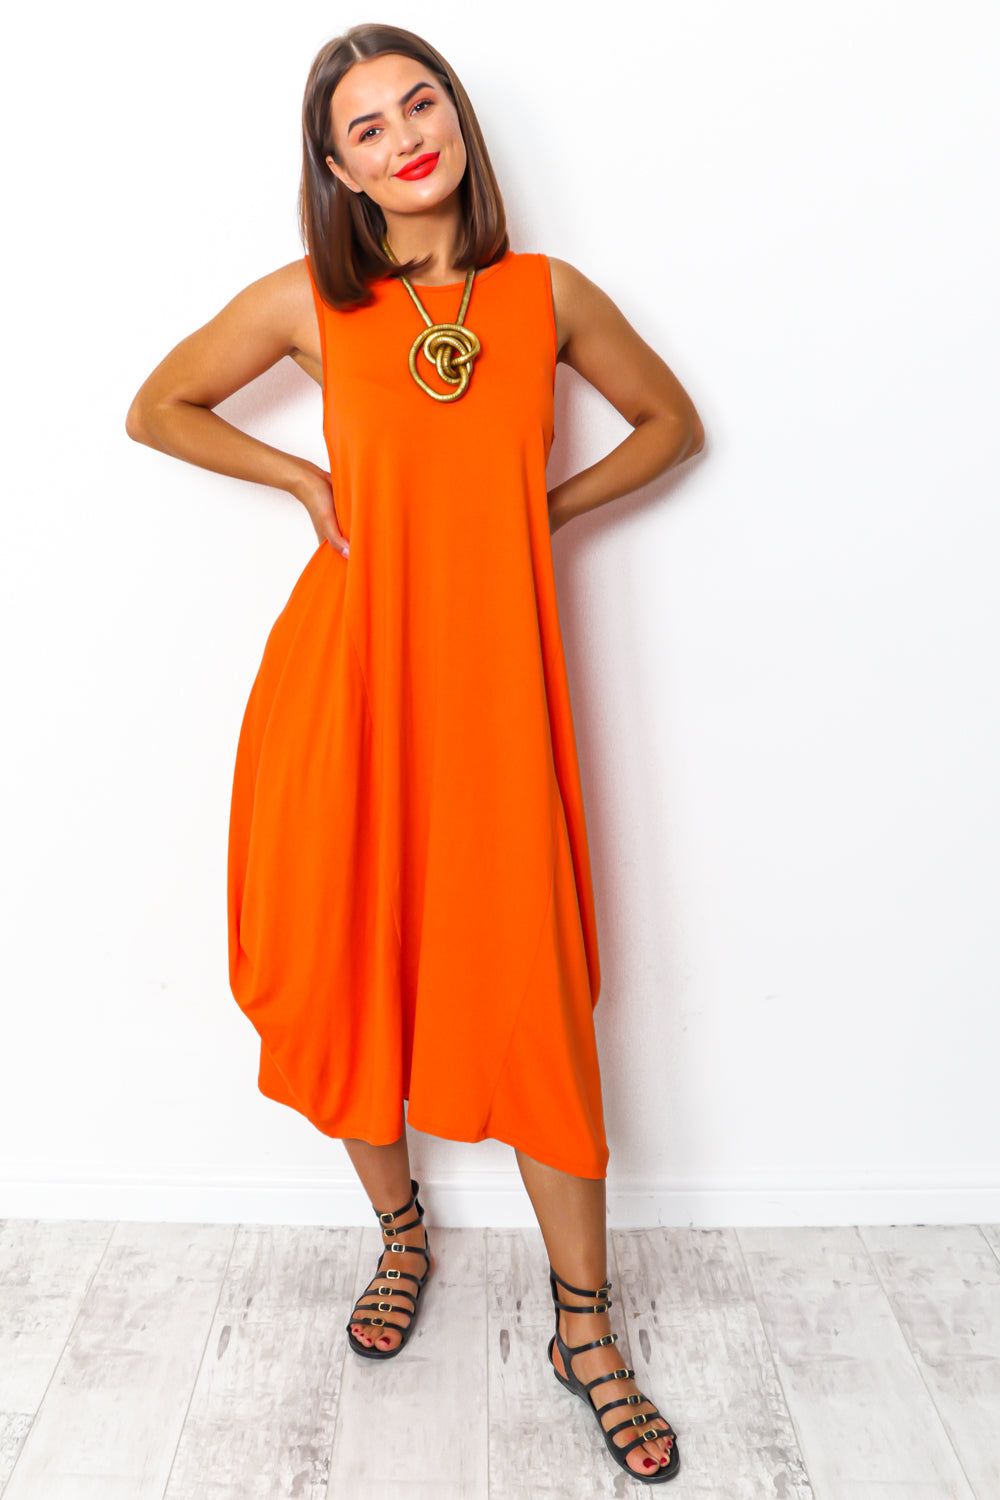 Orange tie dye maxi parachute dress